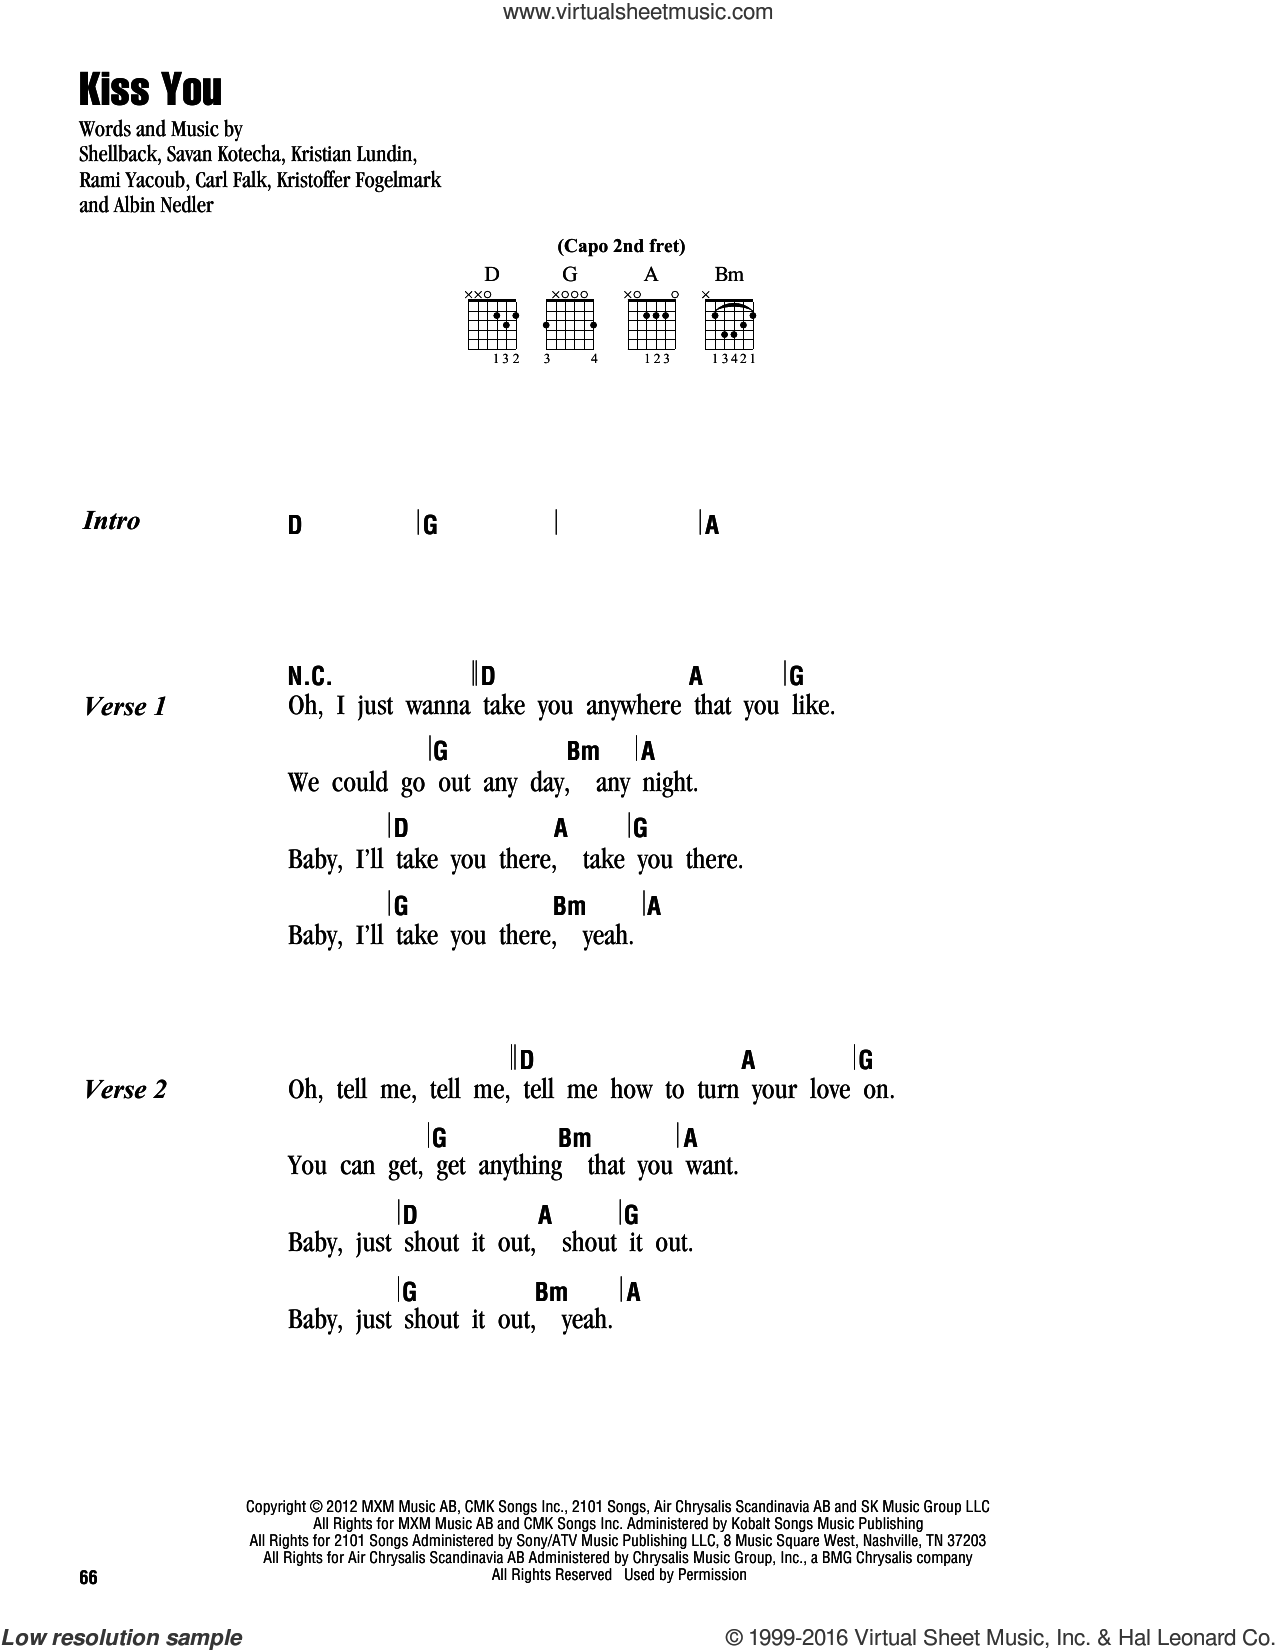 Kiss You sheet music for guitar (chords) by Shellback